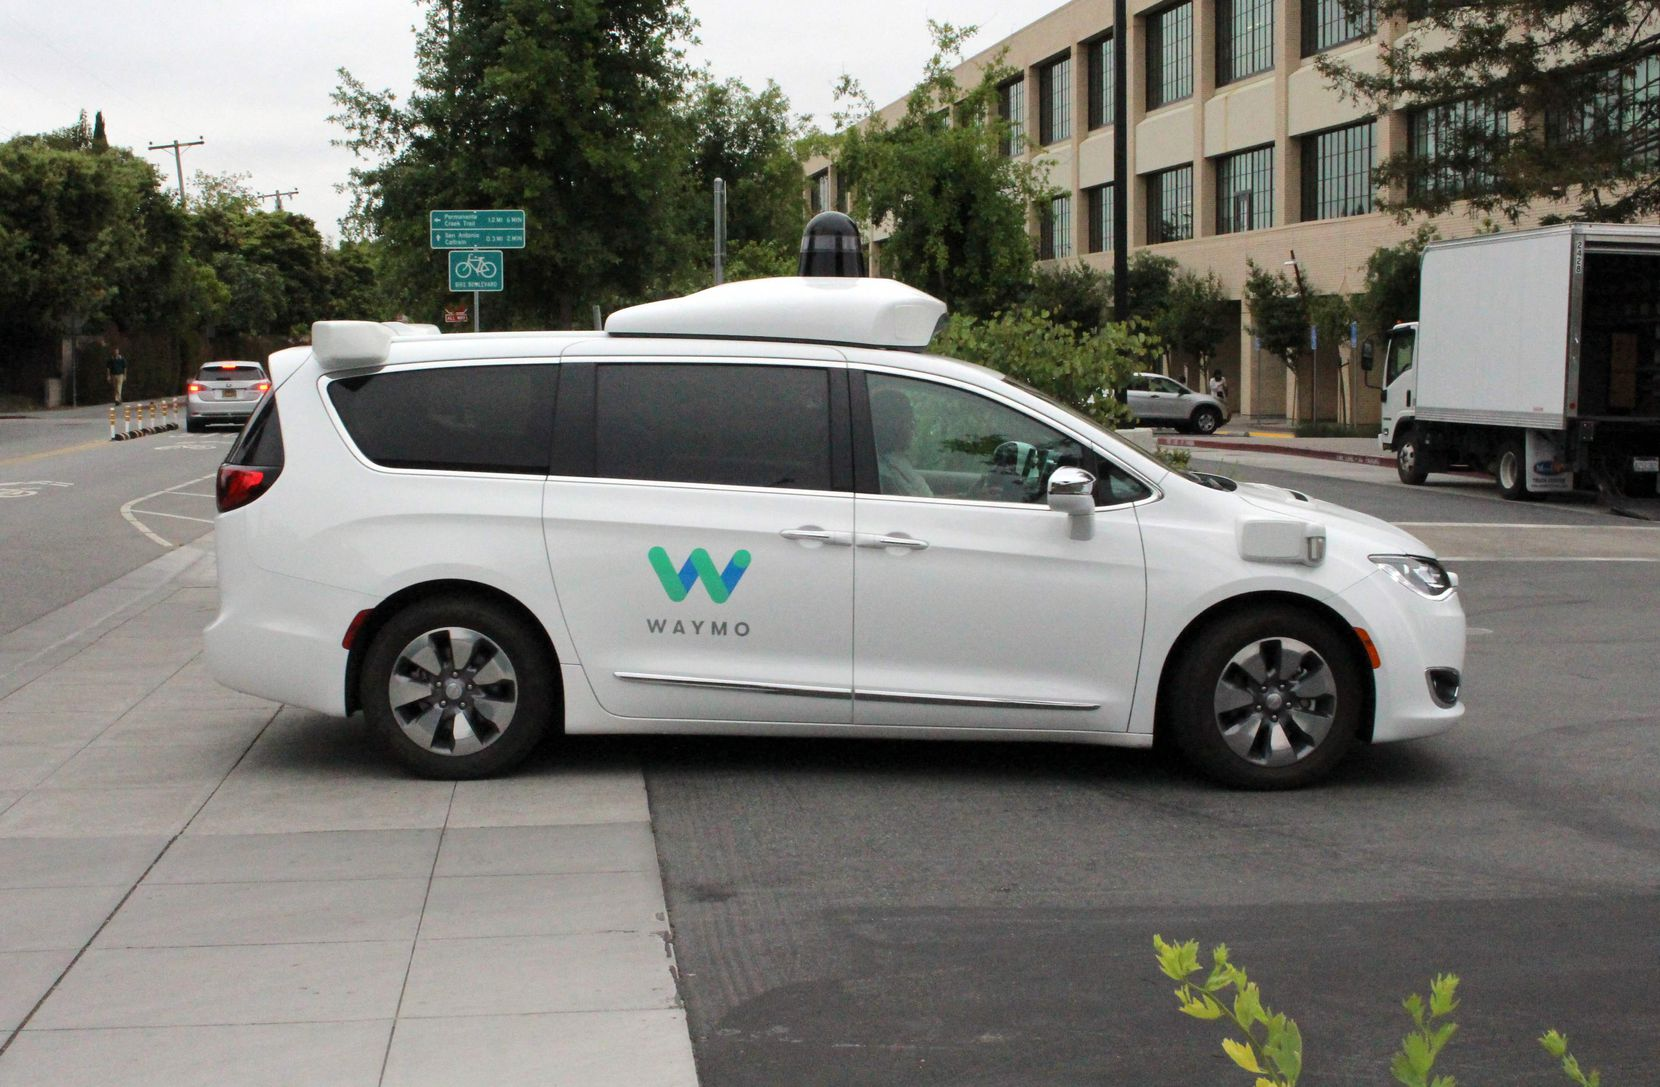 In this 2019 file photo, a Waymo self-driving car pulls into a parking lot at the Google-owned company's headquarters in Mountain View, Calif.